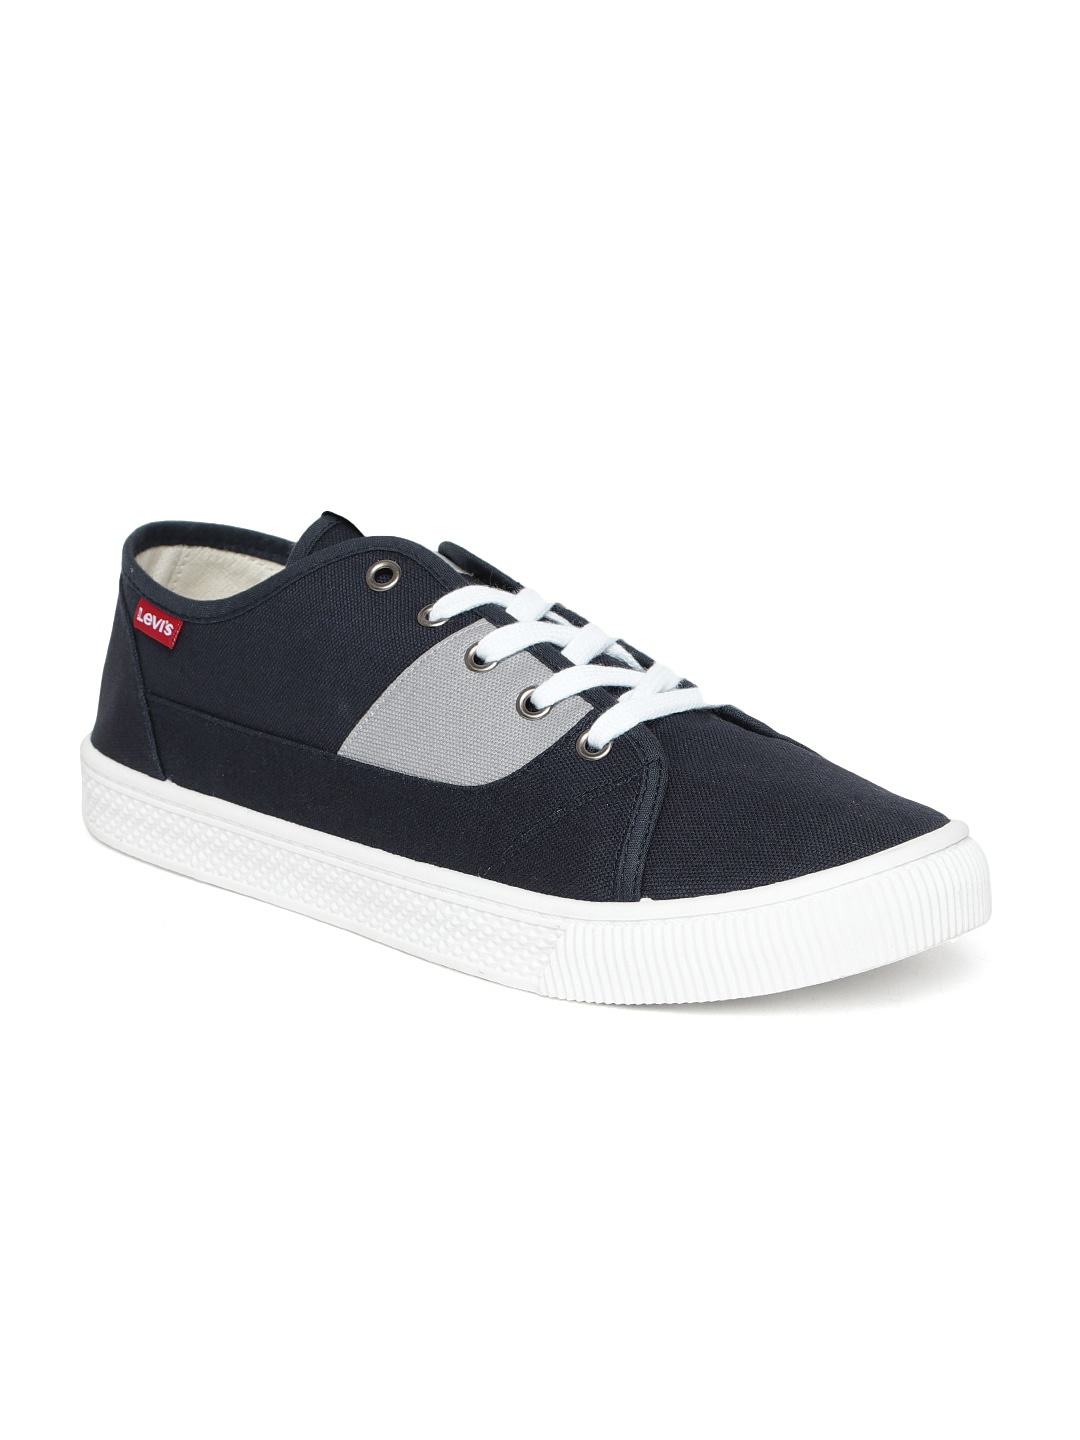 Online Levis Myntra Buy Casual Shoes qWAAgwTxtH